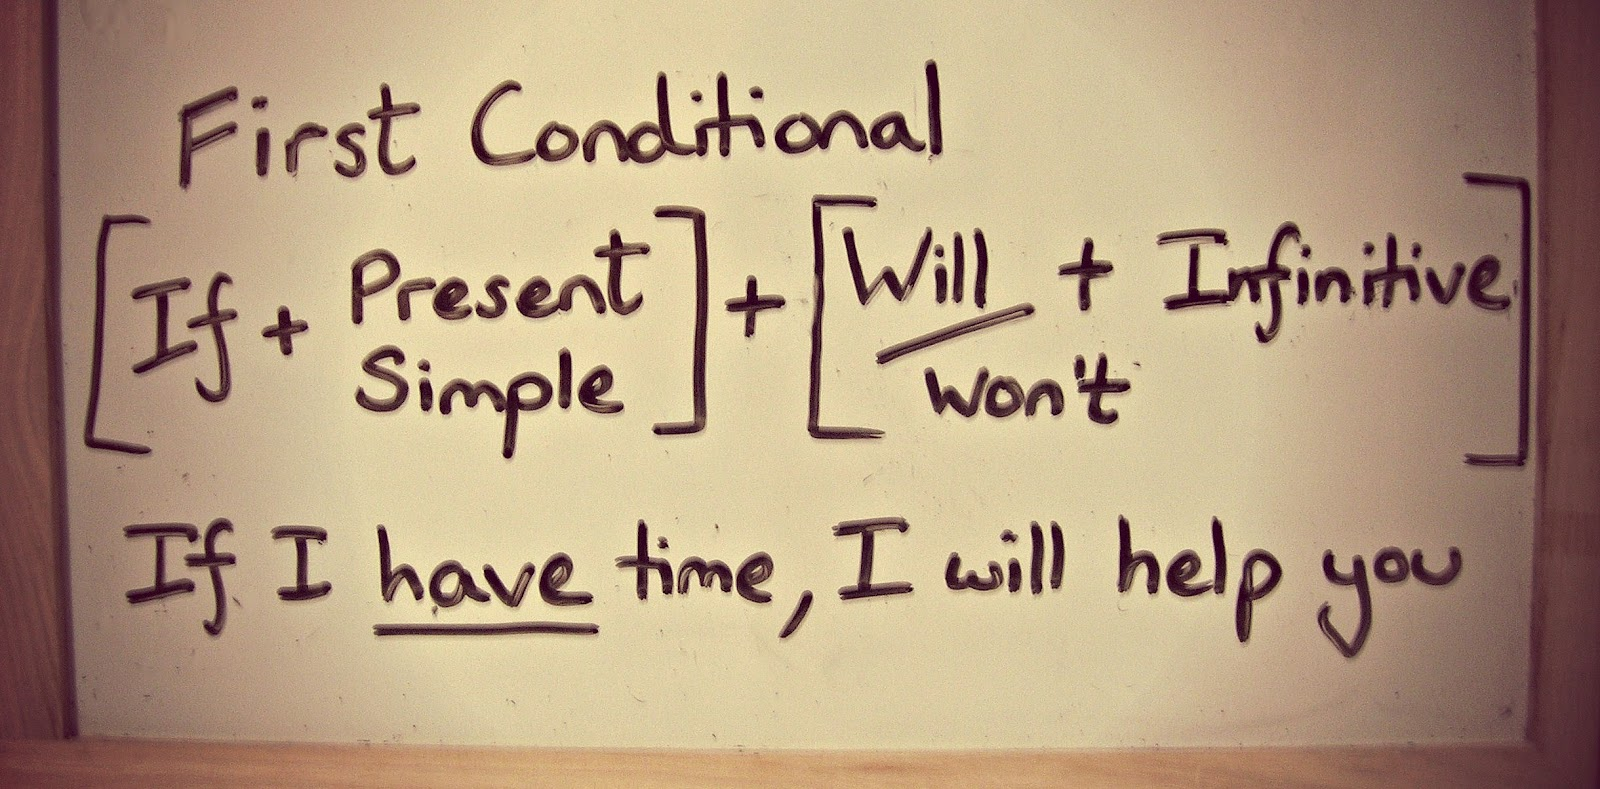 First Conditional Second Conditional And Third Conditional